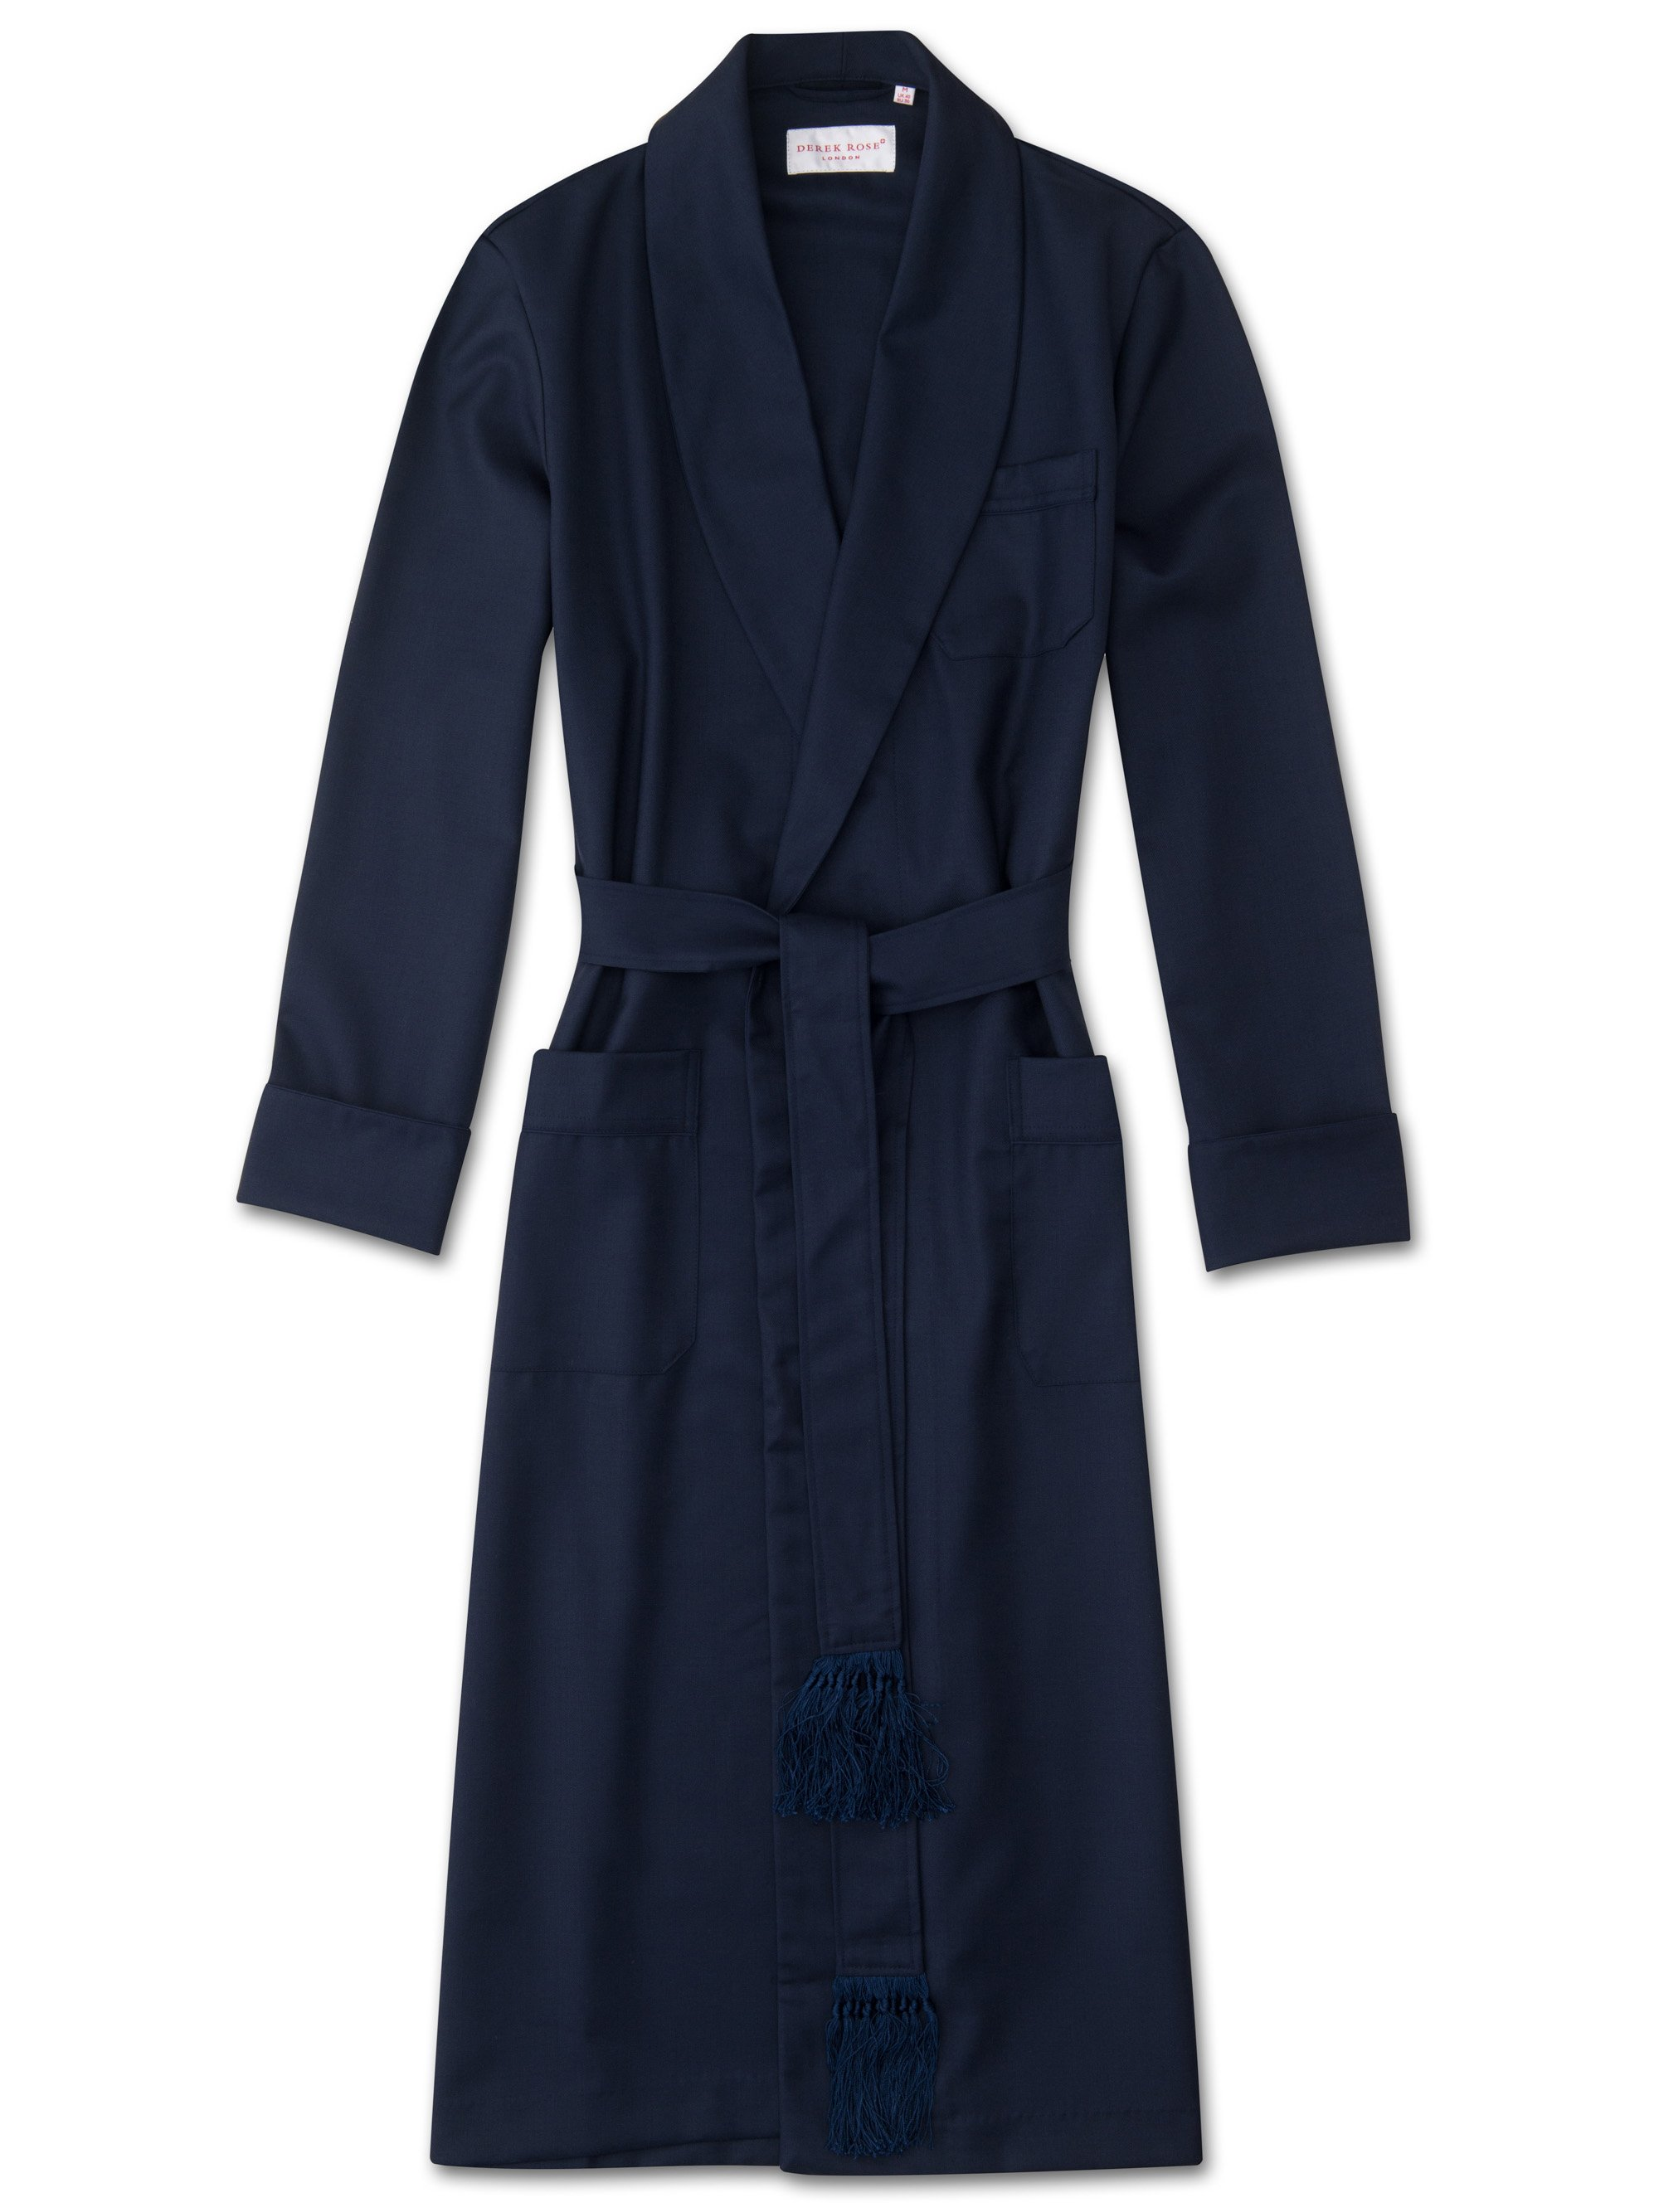 Men's Tasseled Belt Dressing Gown Westminster 2 Pure Wool Navy